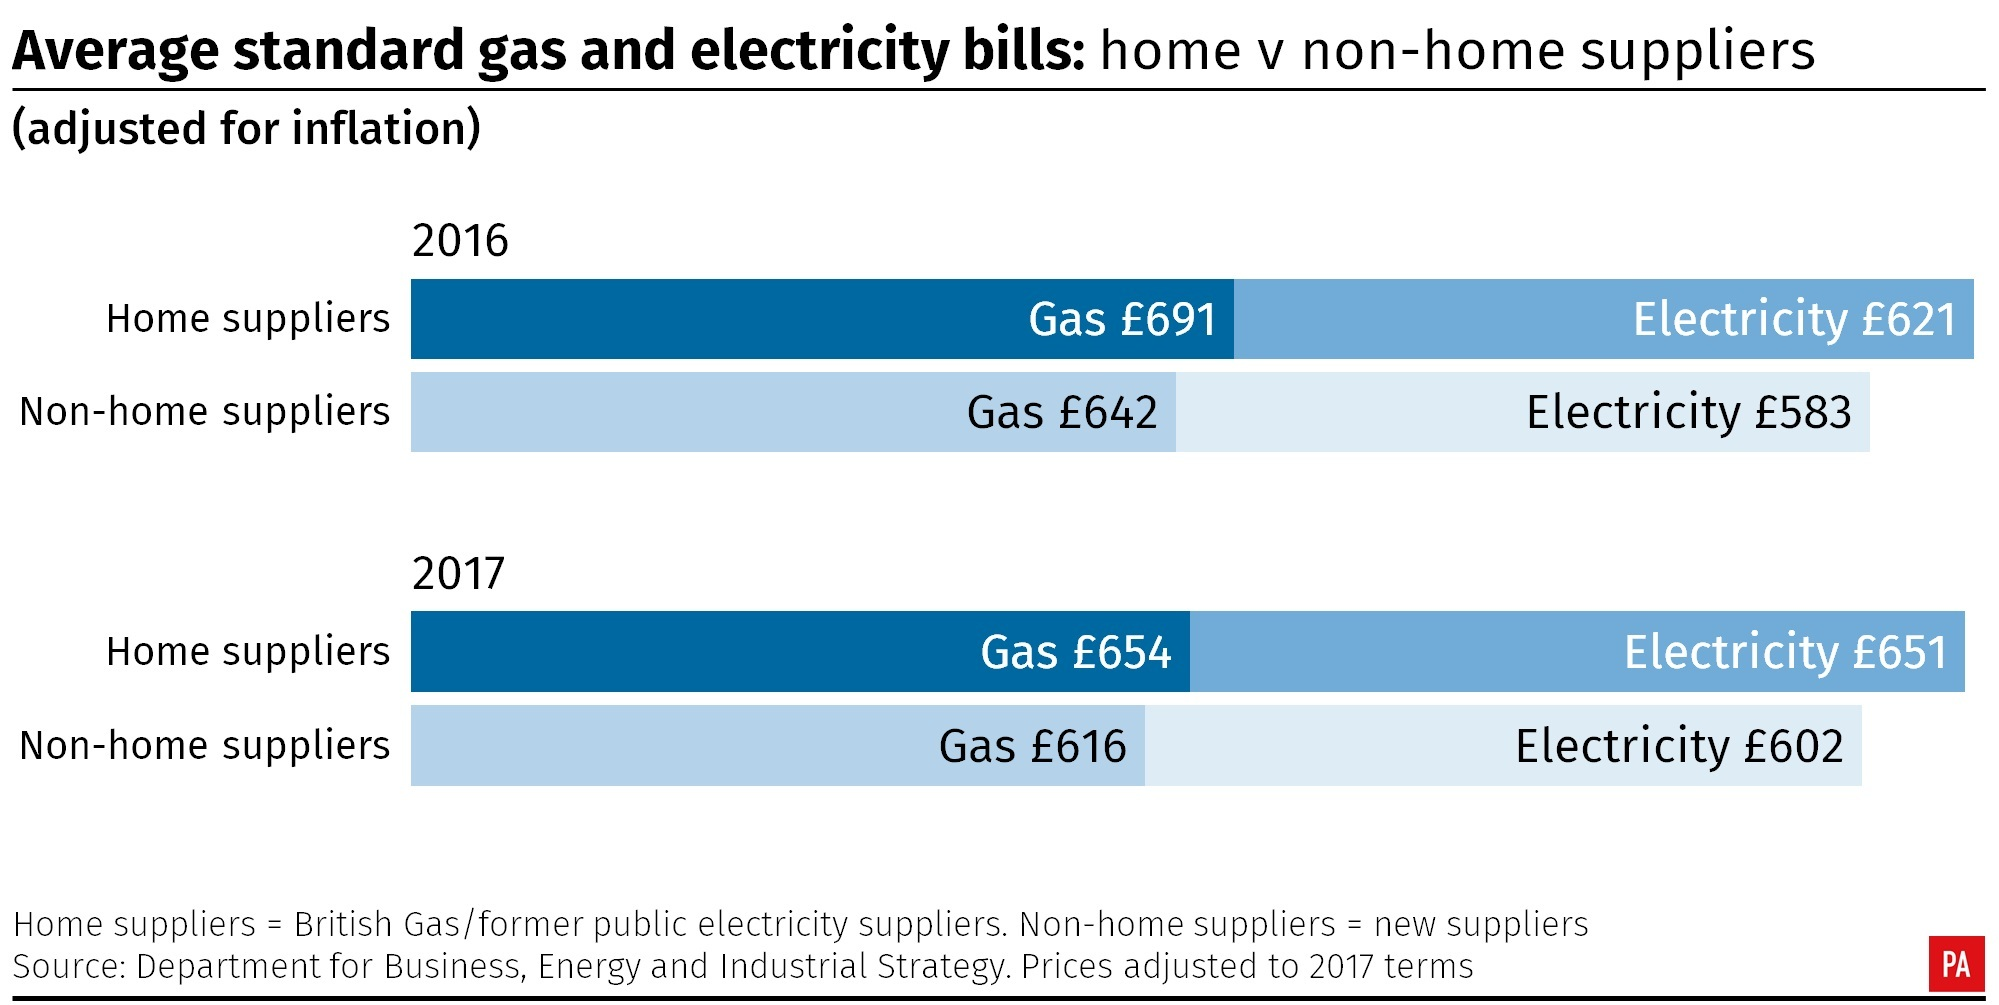 Average standard gas and electricity bills: home v non-home suppliers (PA Graphics)